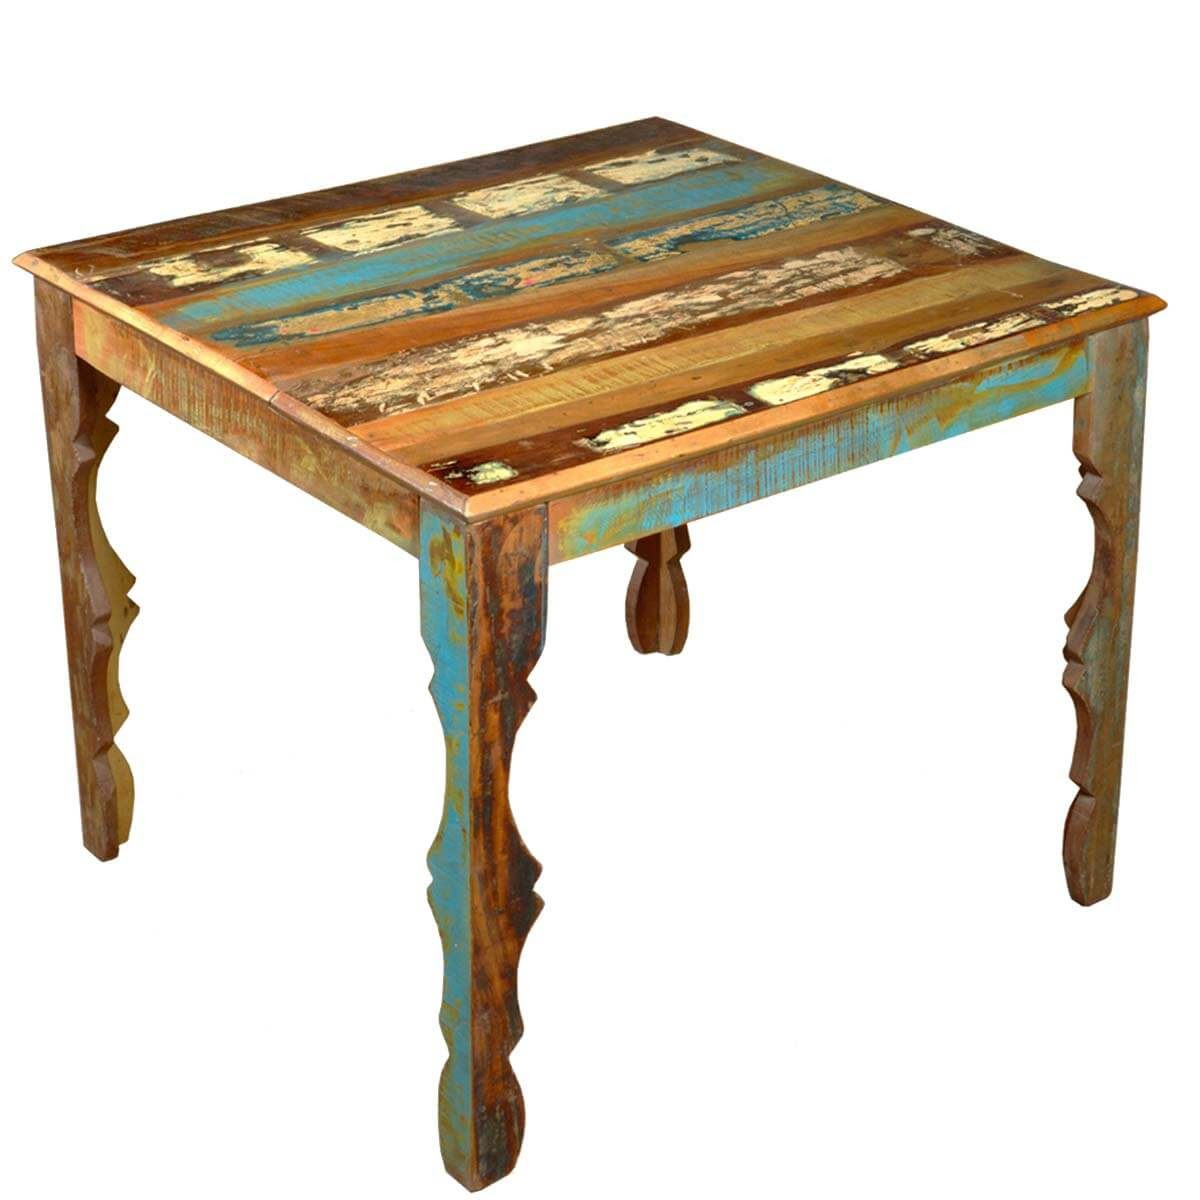 Rustic Reclaimed Wood 36\u0026quot; Square Dining Table w Decorative Legs